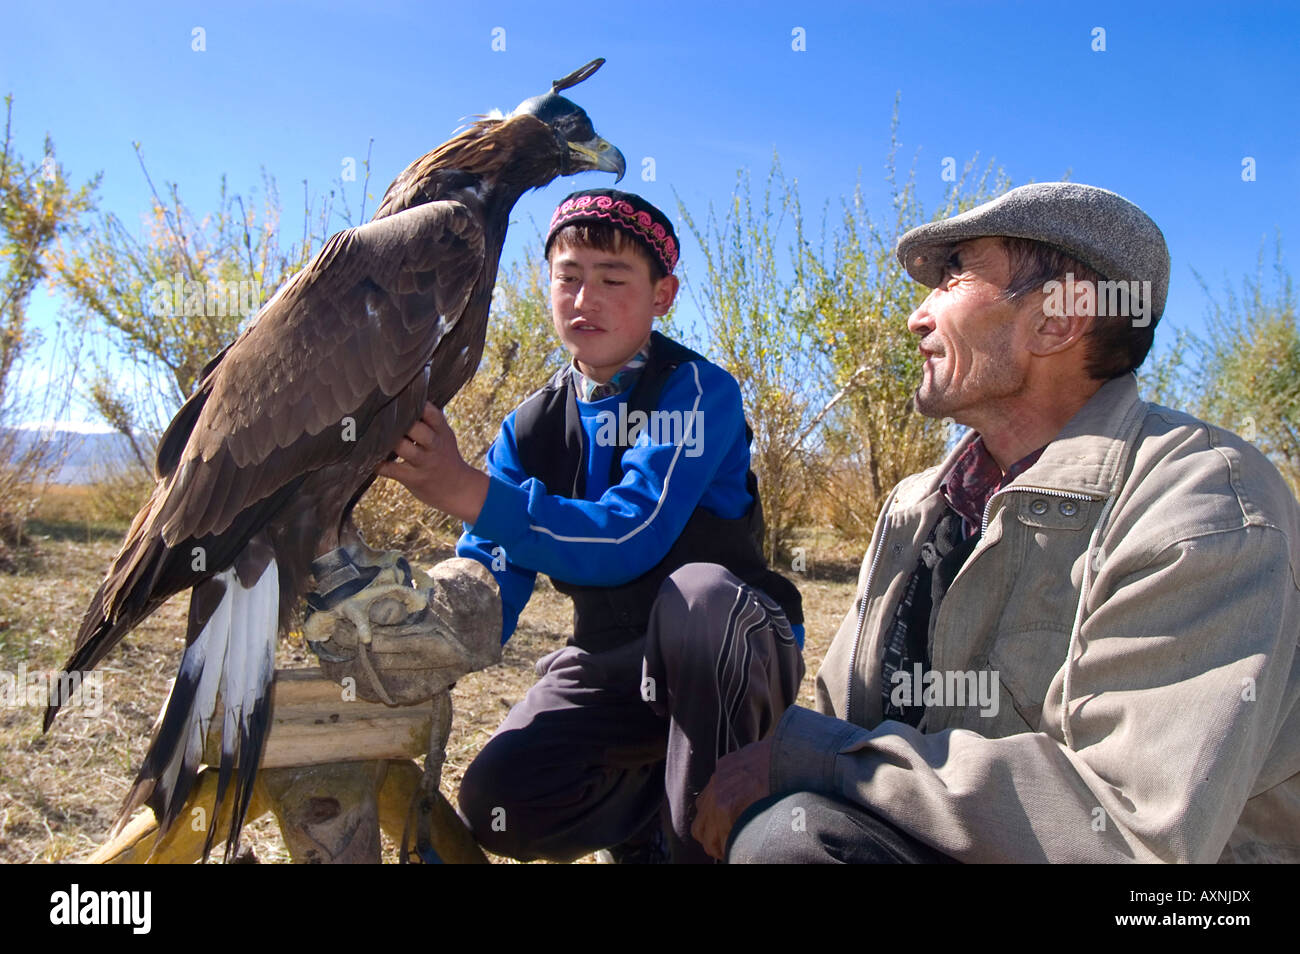 An eagle hunter trains his eagle and teaches his son the ancient Kazakh sport of eagle hunting Bayan Olgi Mongolia Stock Photo